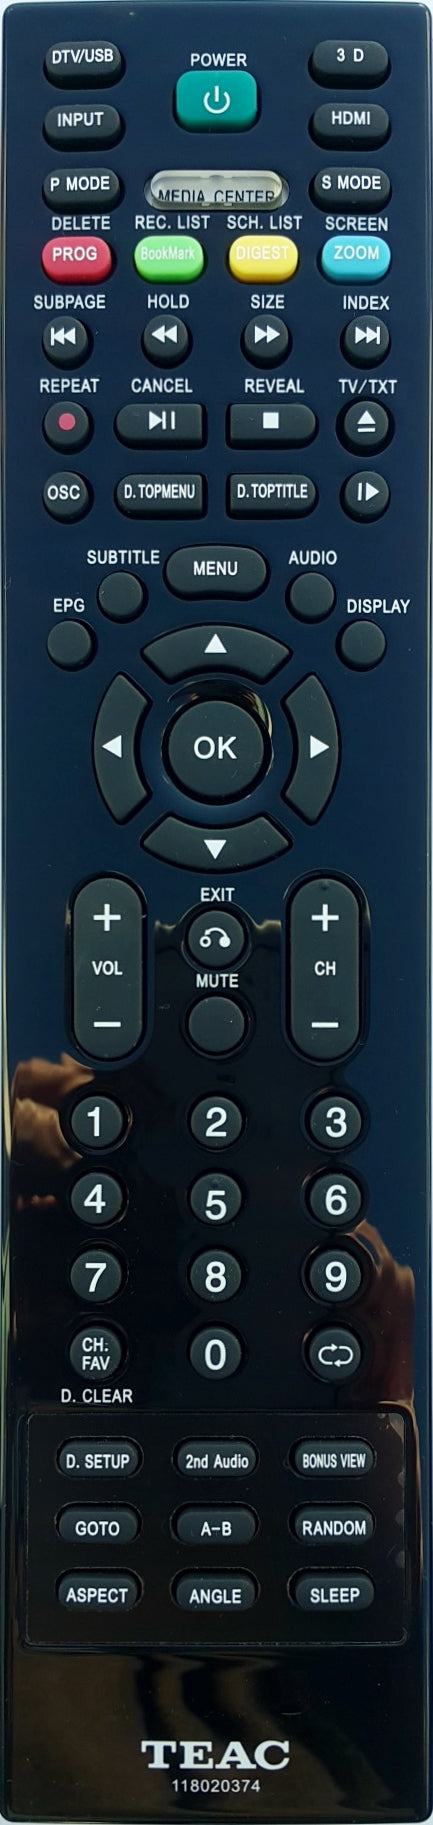 ORIGINAL TEAC REMOTE CONTROL 118020374  LE5851FH3D LE5094FH3D  TV - Remote Control Warehouse